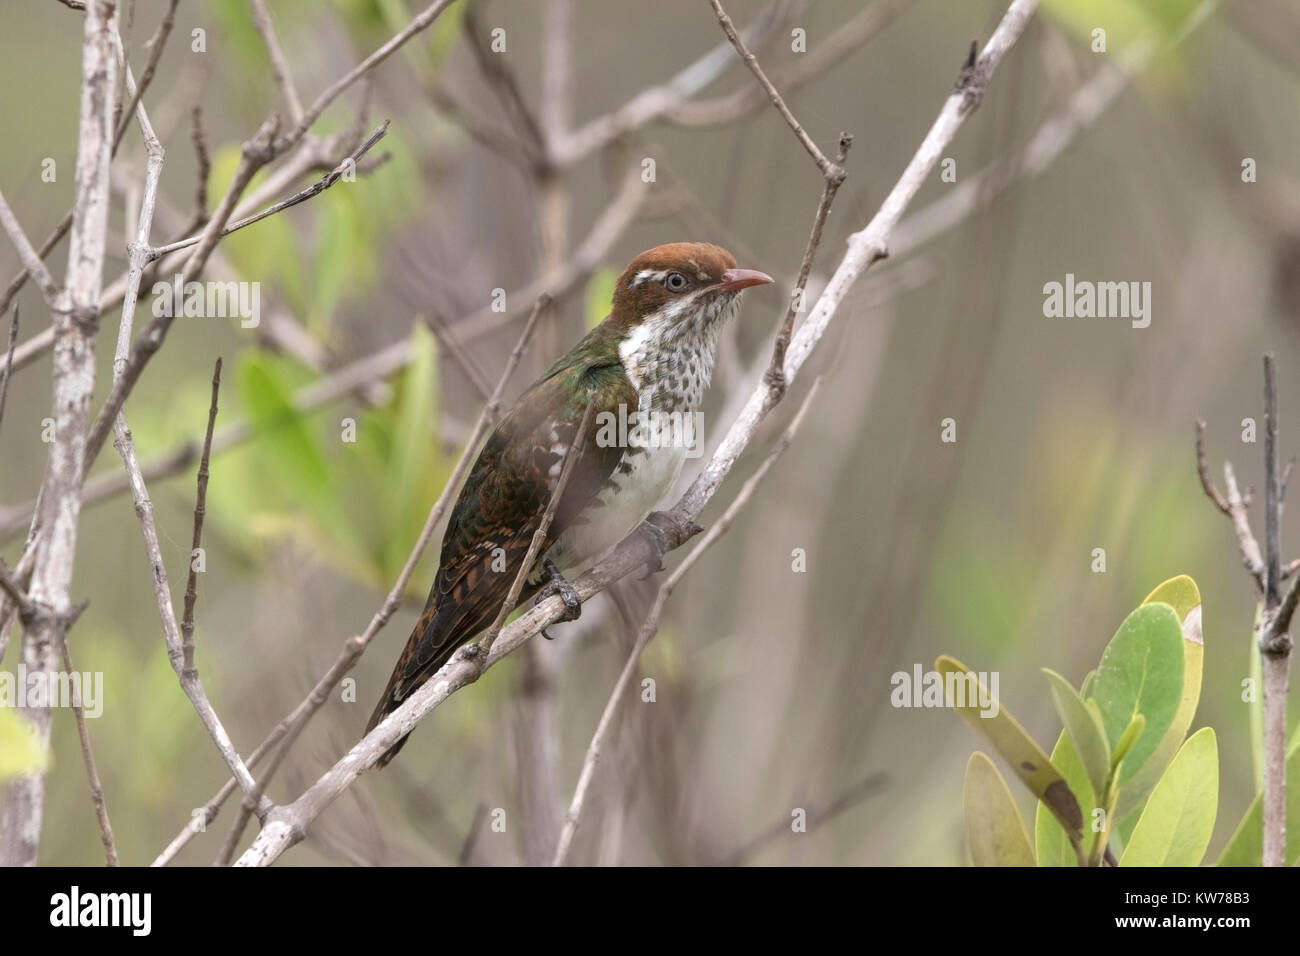 juvenile diederik cuckoo (Chrysococcyx caprius) perched on branch in mangroves, Gambia, west Africa - Stock Image